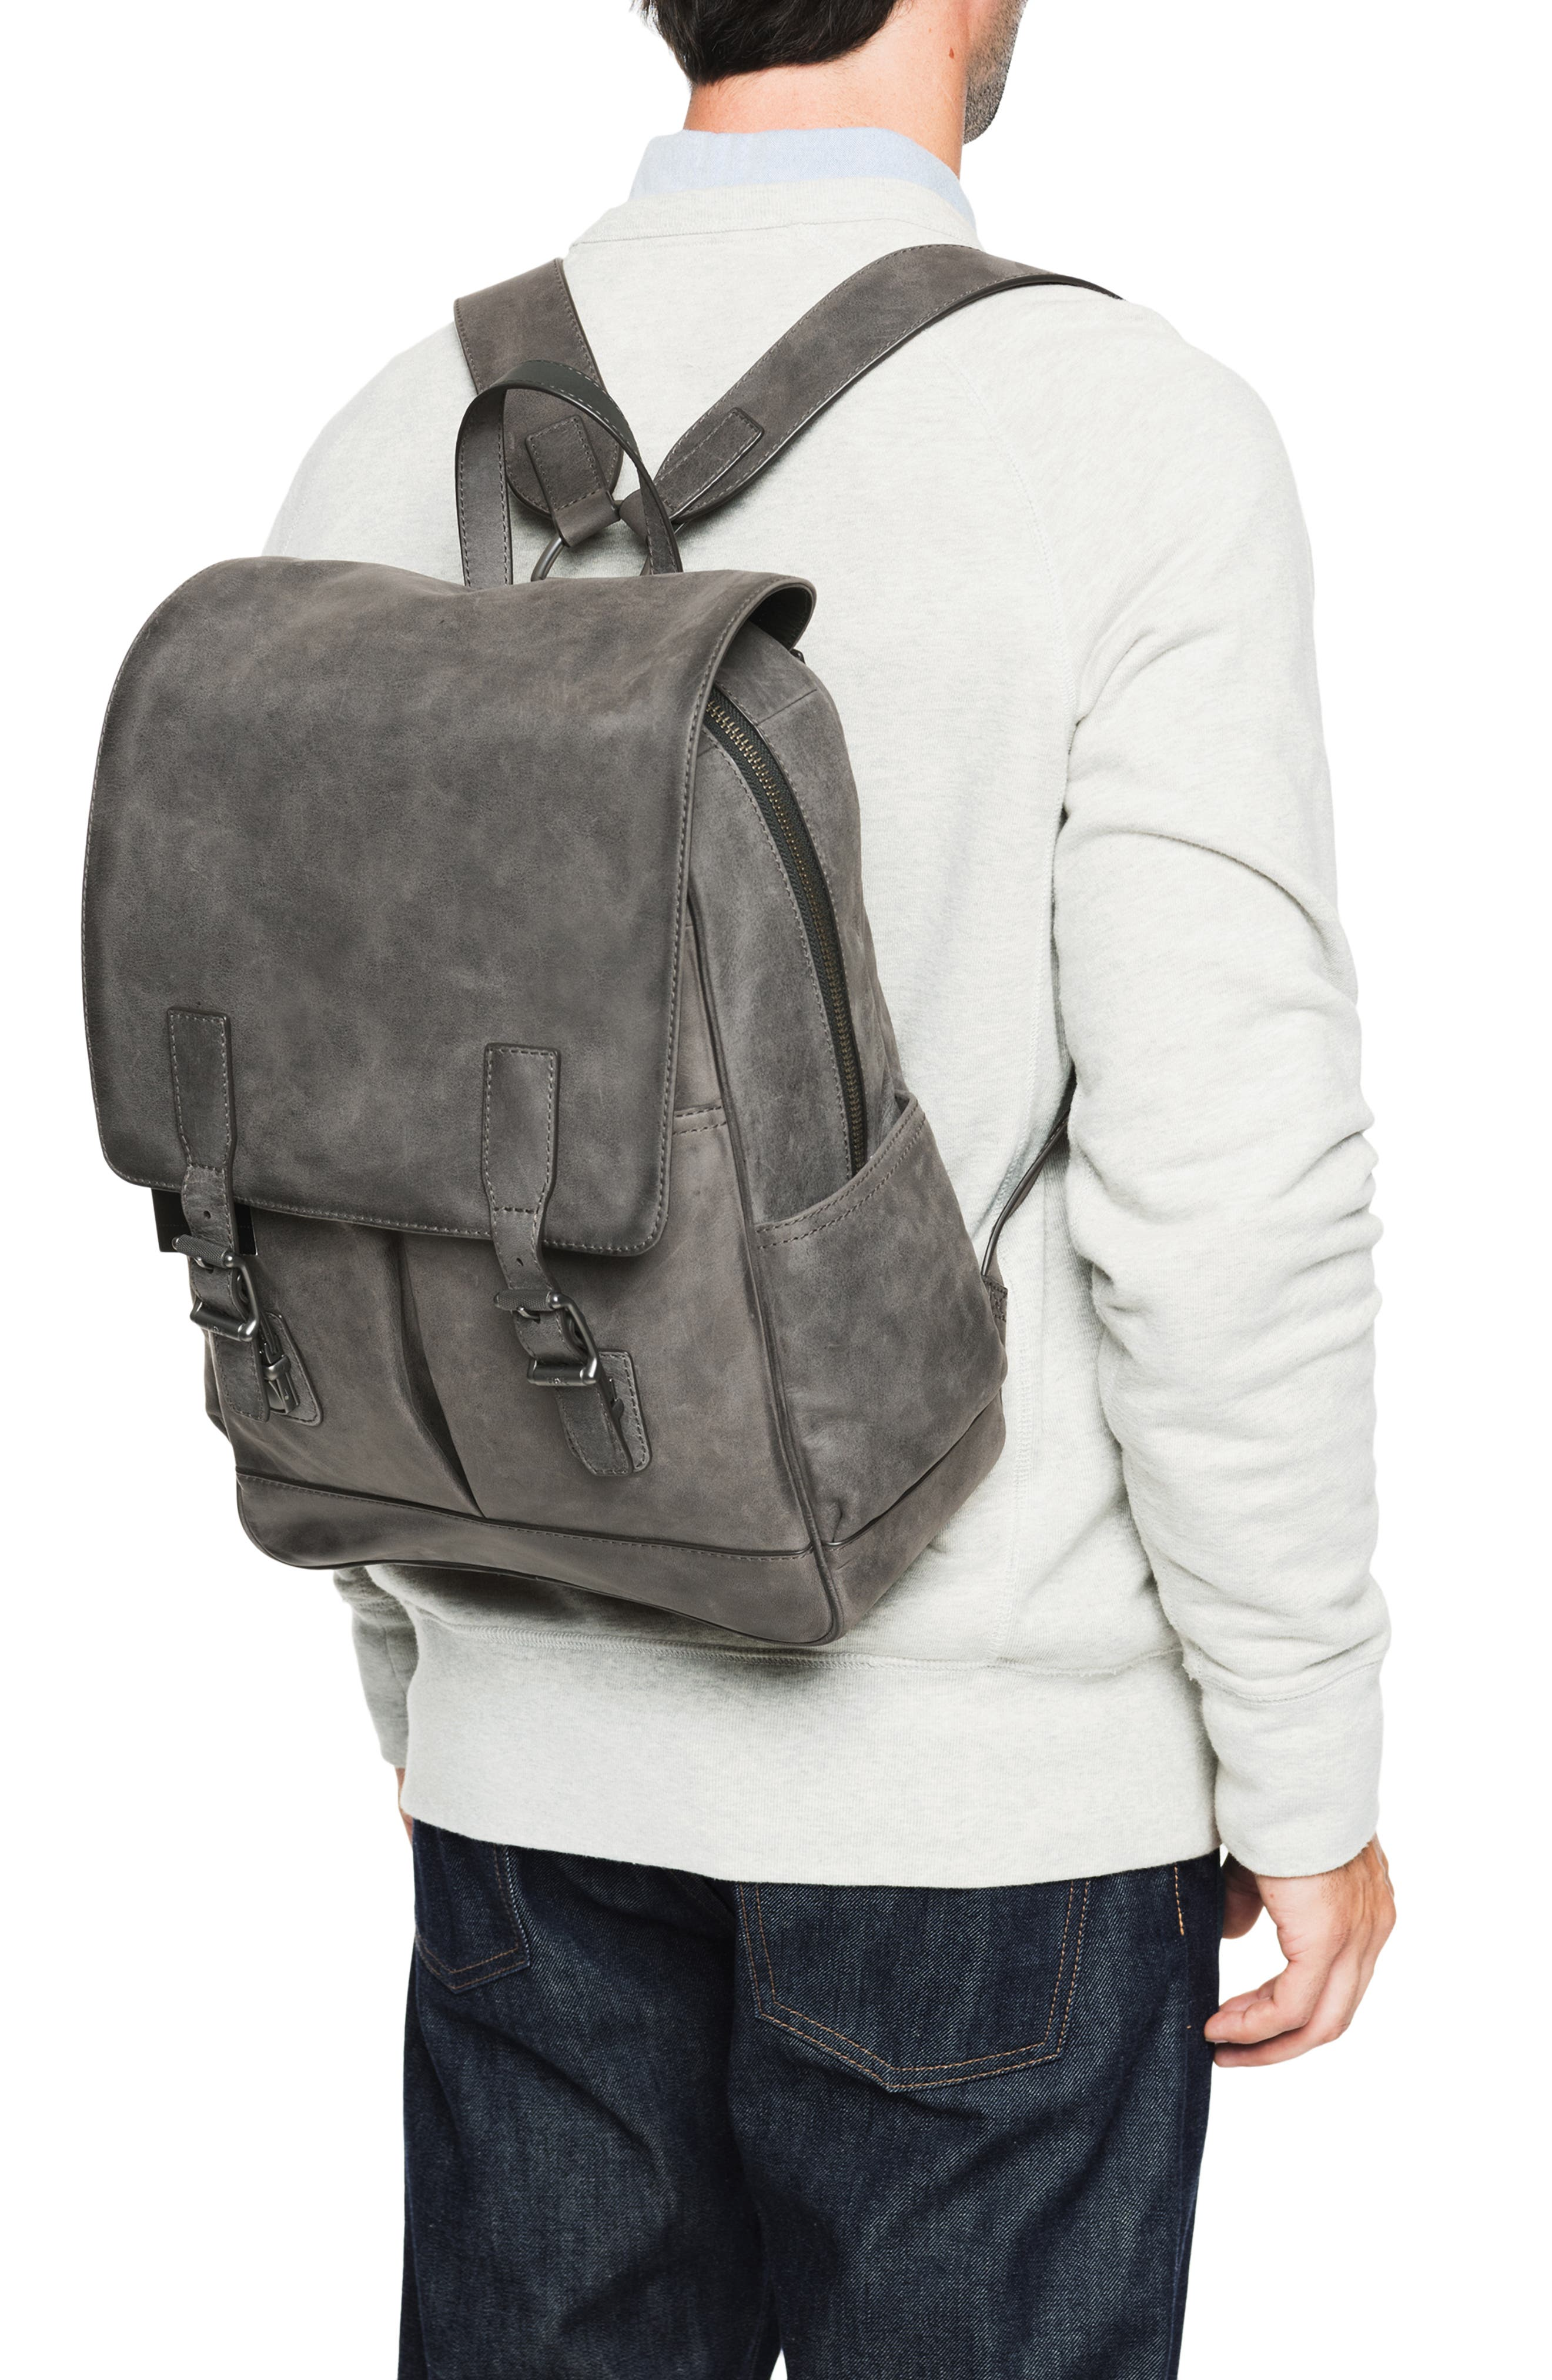 Oliver Leather Backpack,                             Alternate thumbnail 2, color,                             SLATE